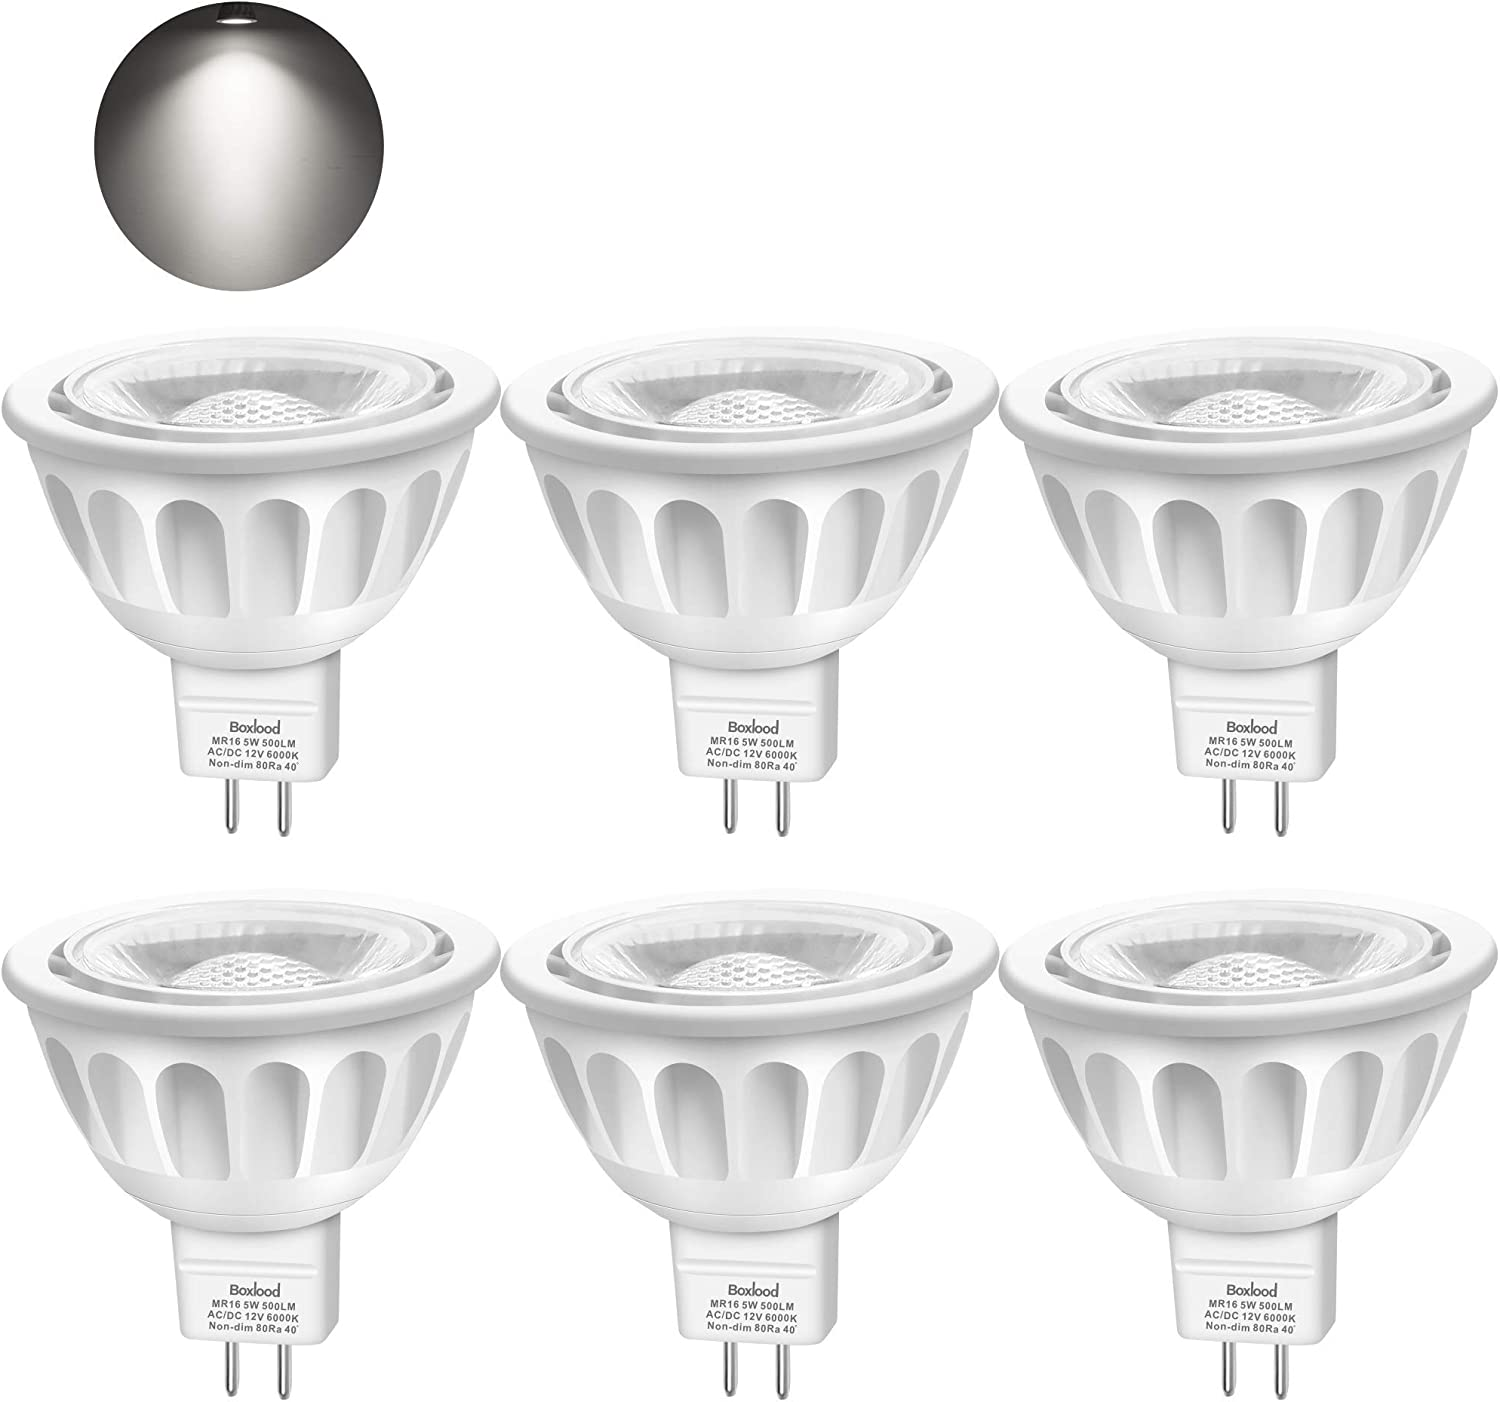 Bombillas LED GU5.3, Boxlood MR16 LED 5W Lámparas Halógenas Equivalentes a 50W, LED 12V MR16, Blanco Frío 6000K, Bombillas led 500LM, LED GU5.3 40°Luz, 6 Pack